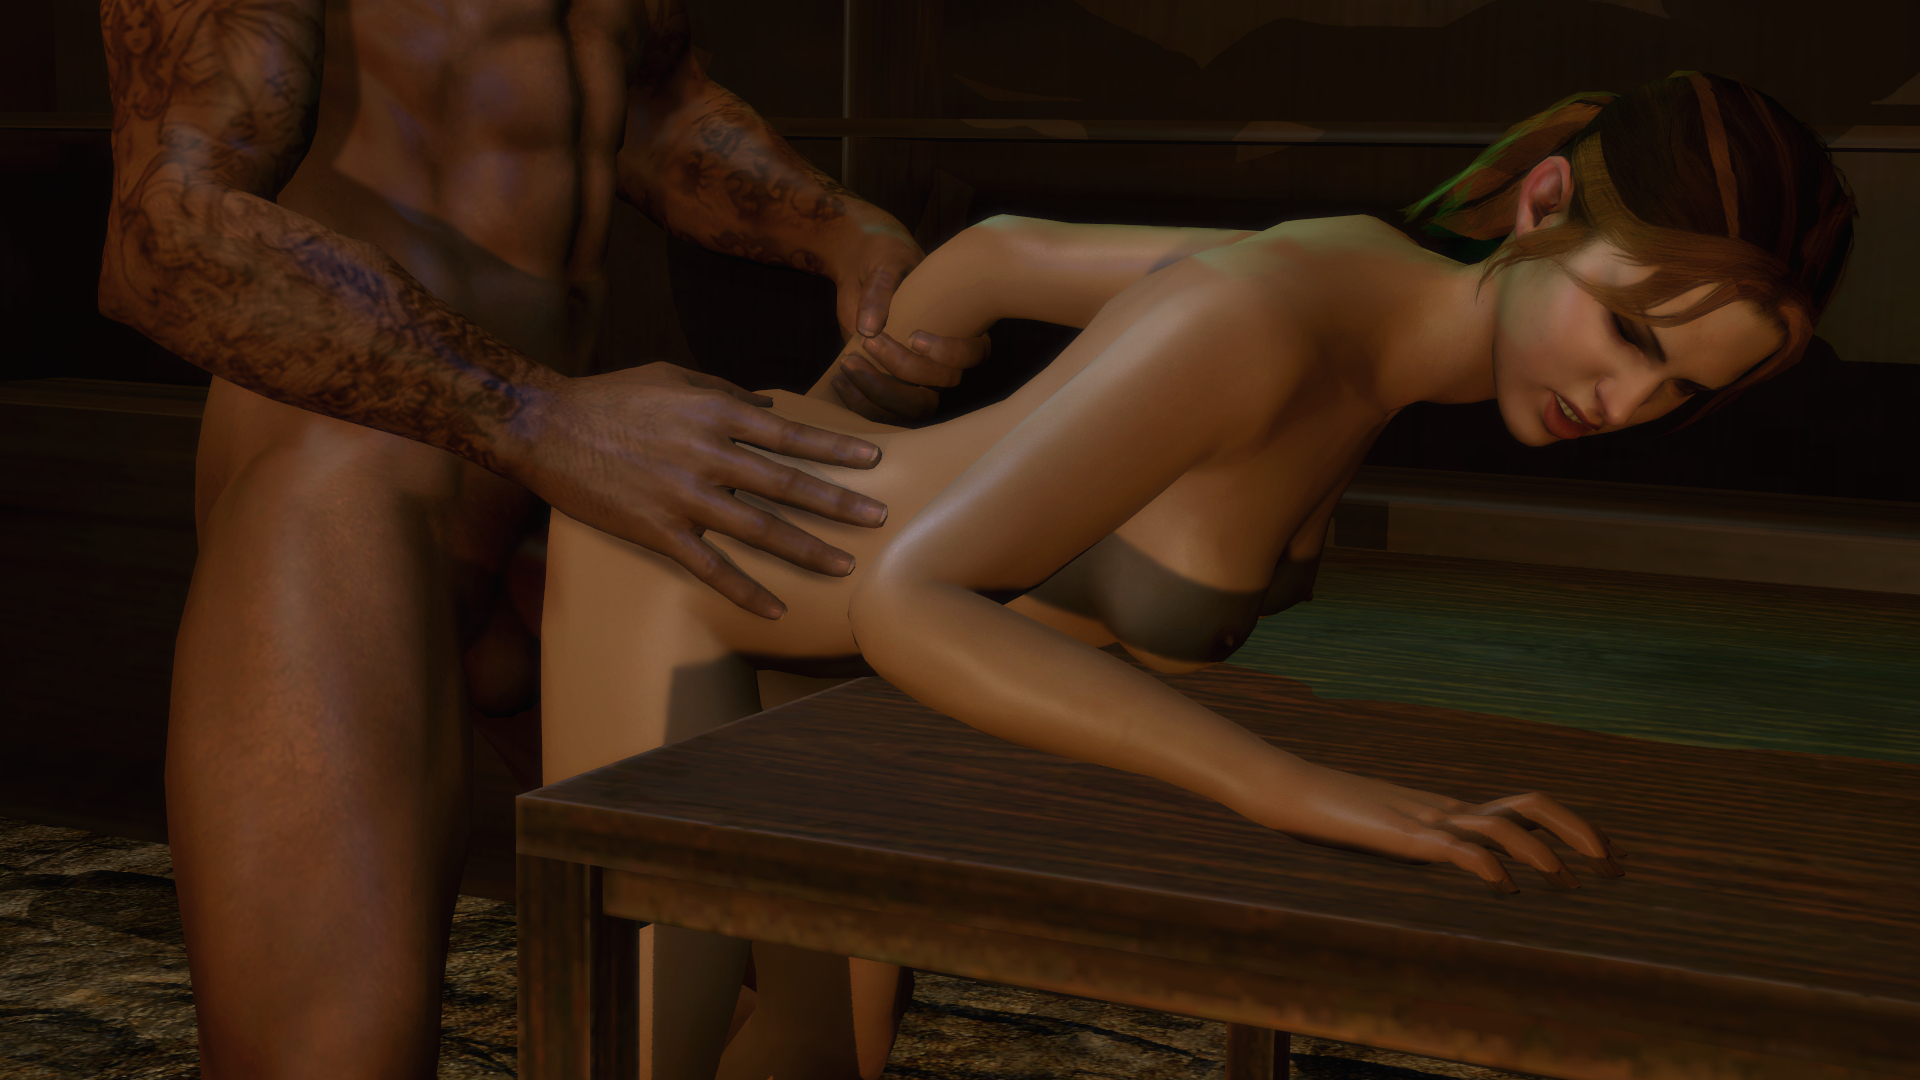 Left for dead sex scene nackt picture